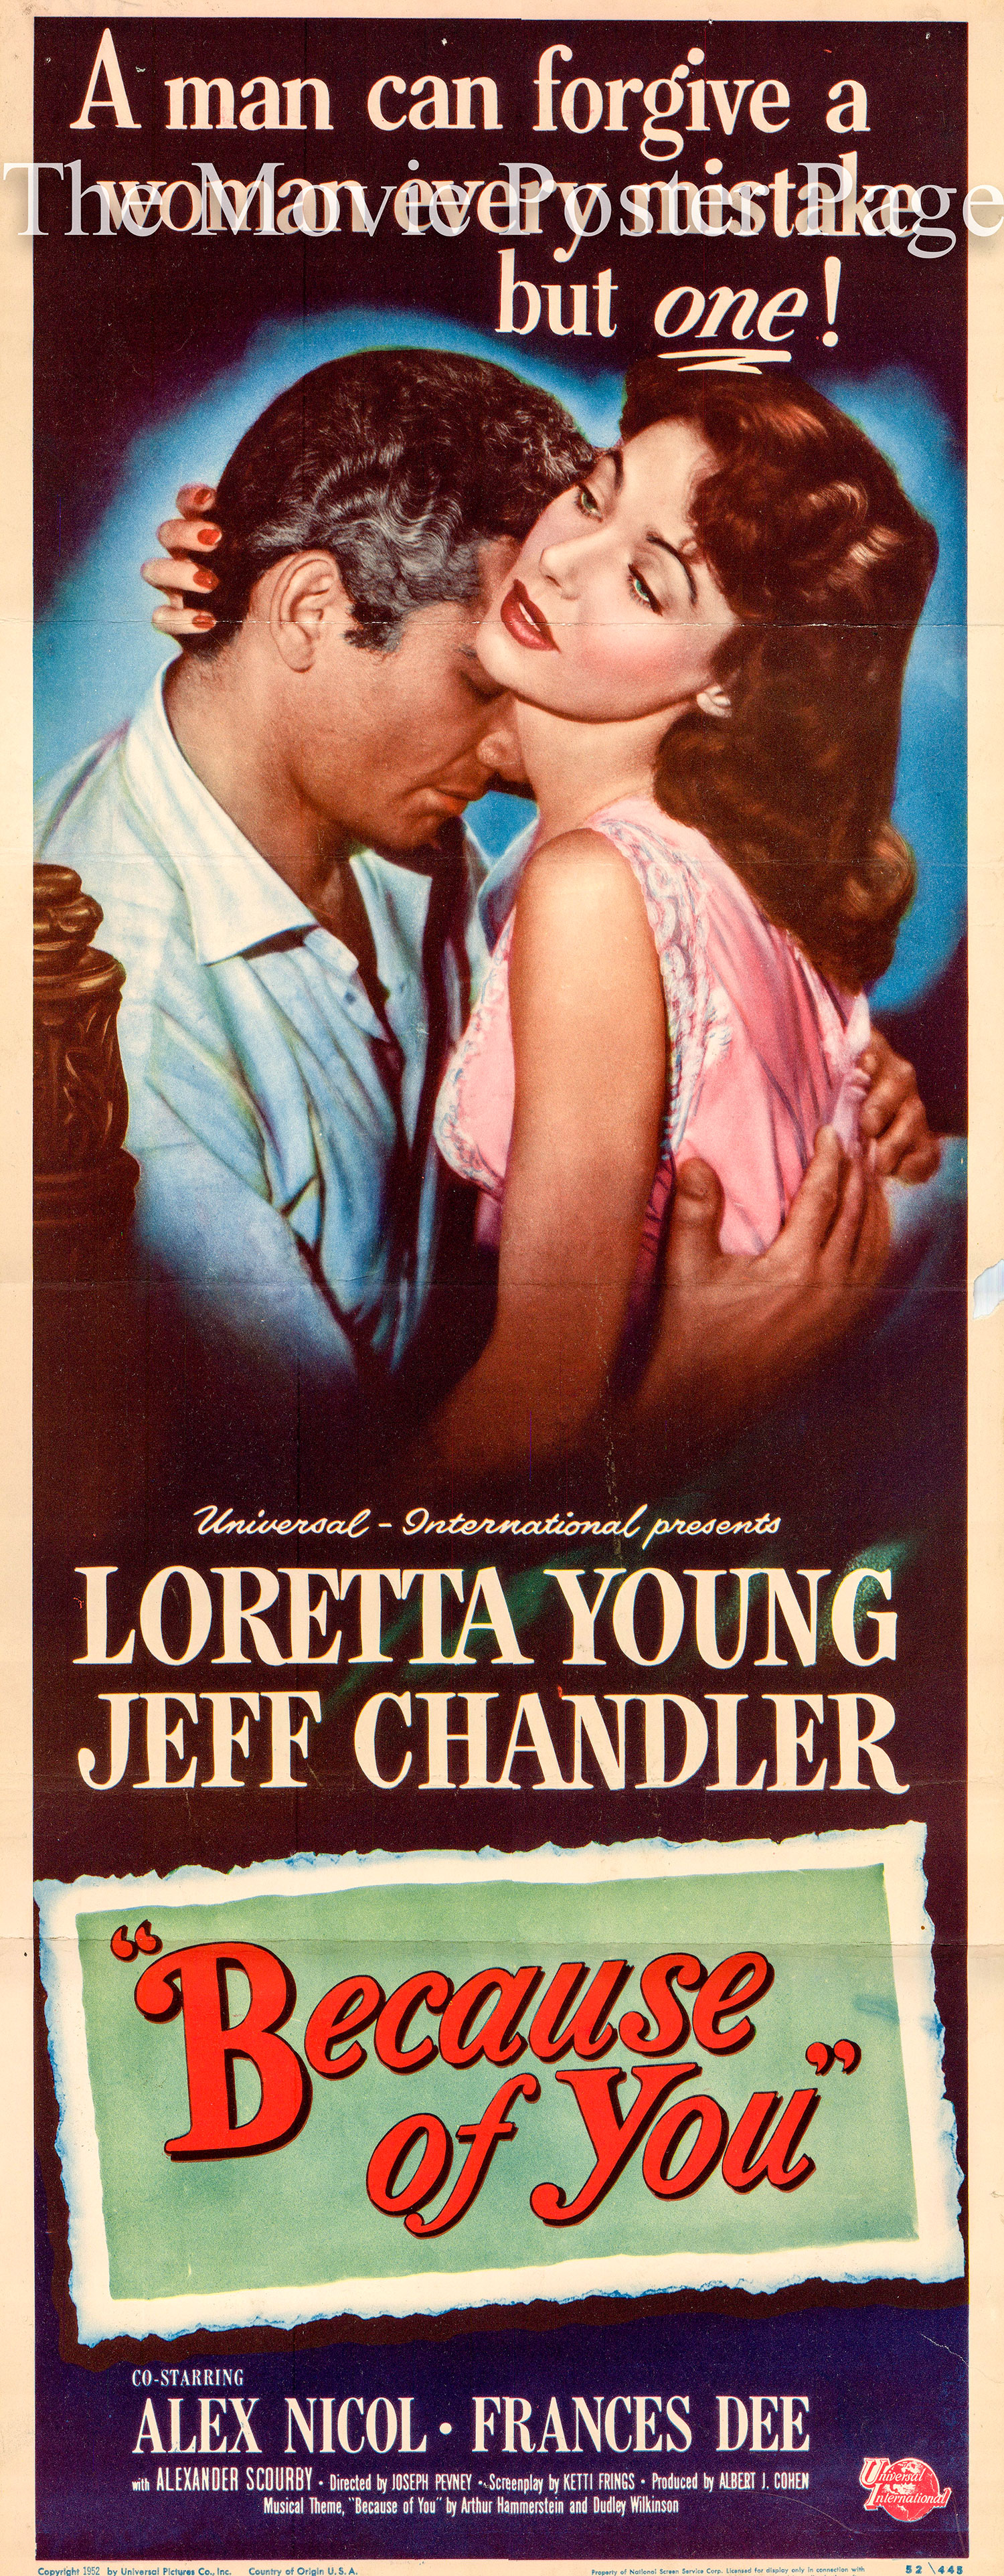 Pictured is a US insert poster for the 1952 Joseph Prevny film Because of You starring Loretta Young.